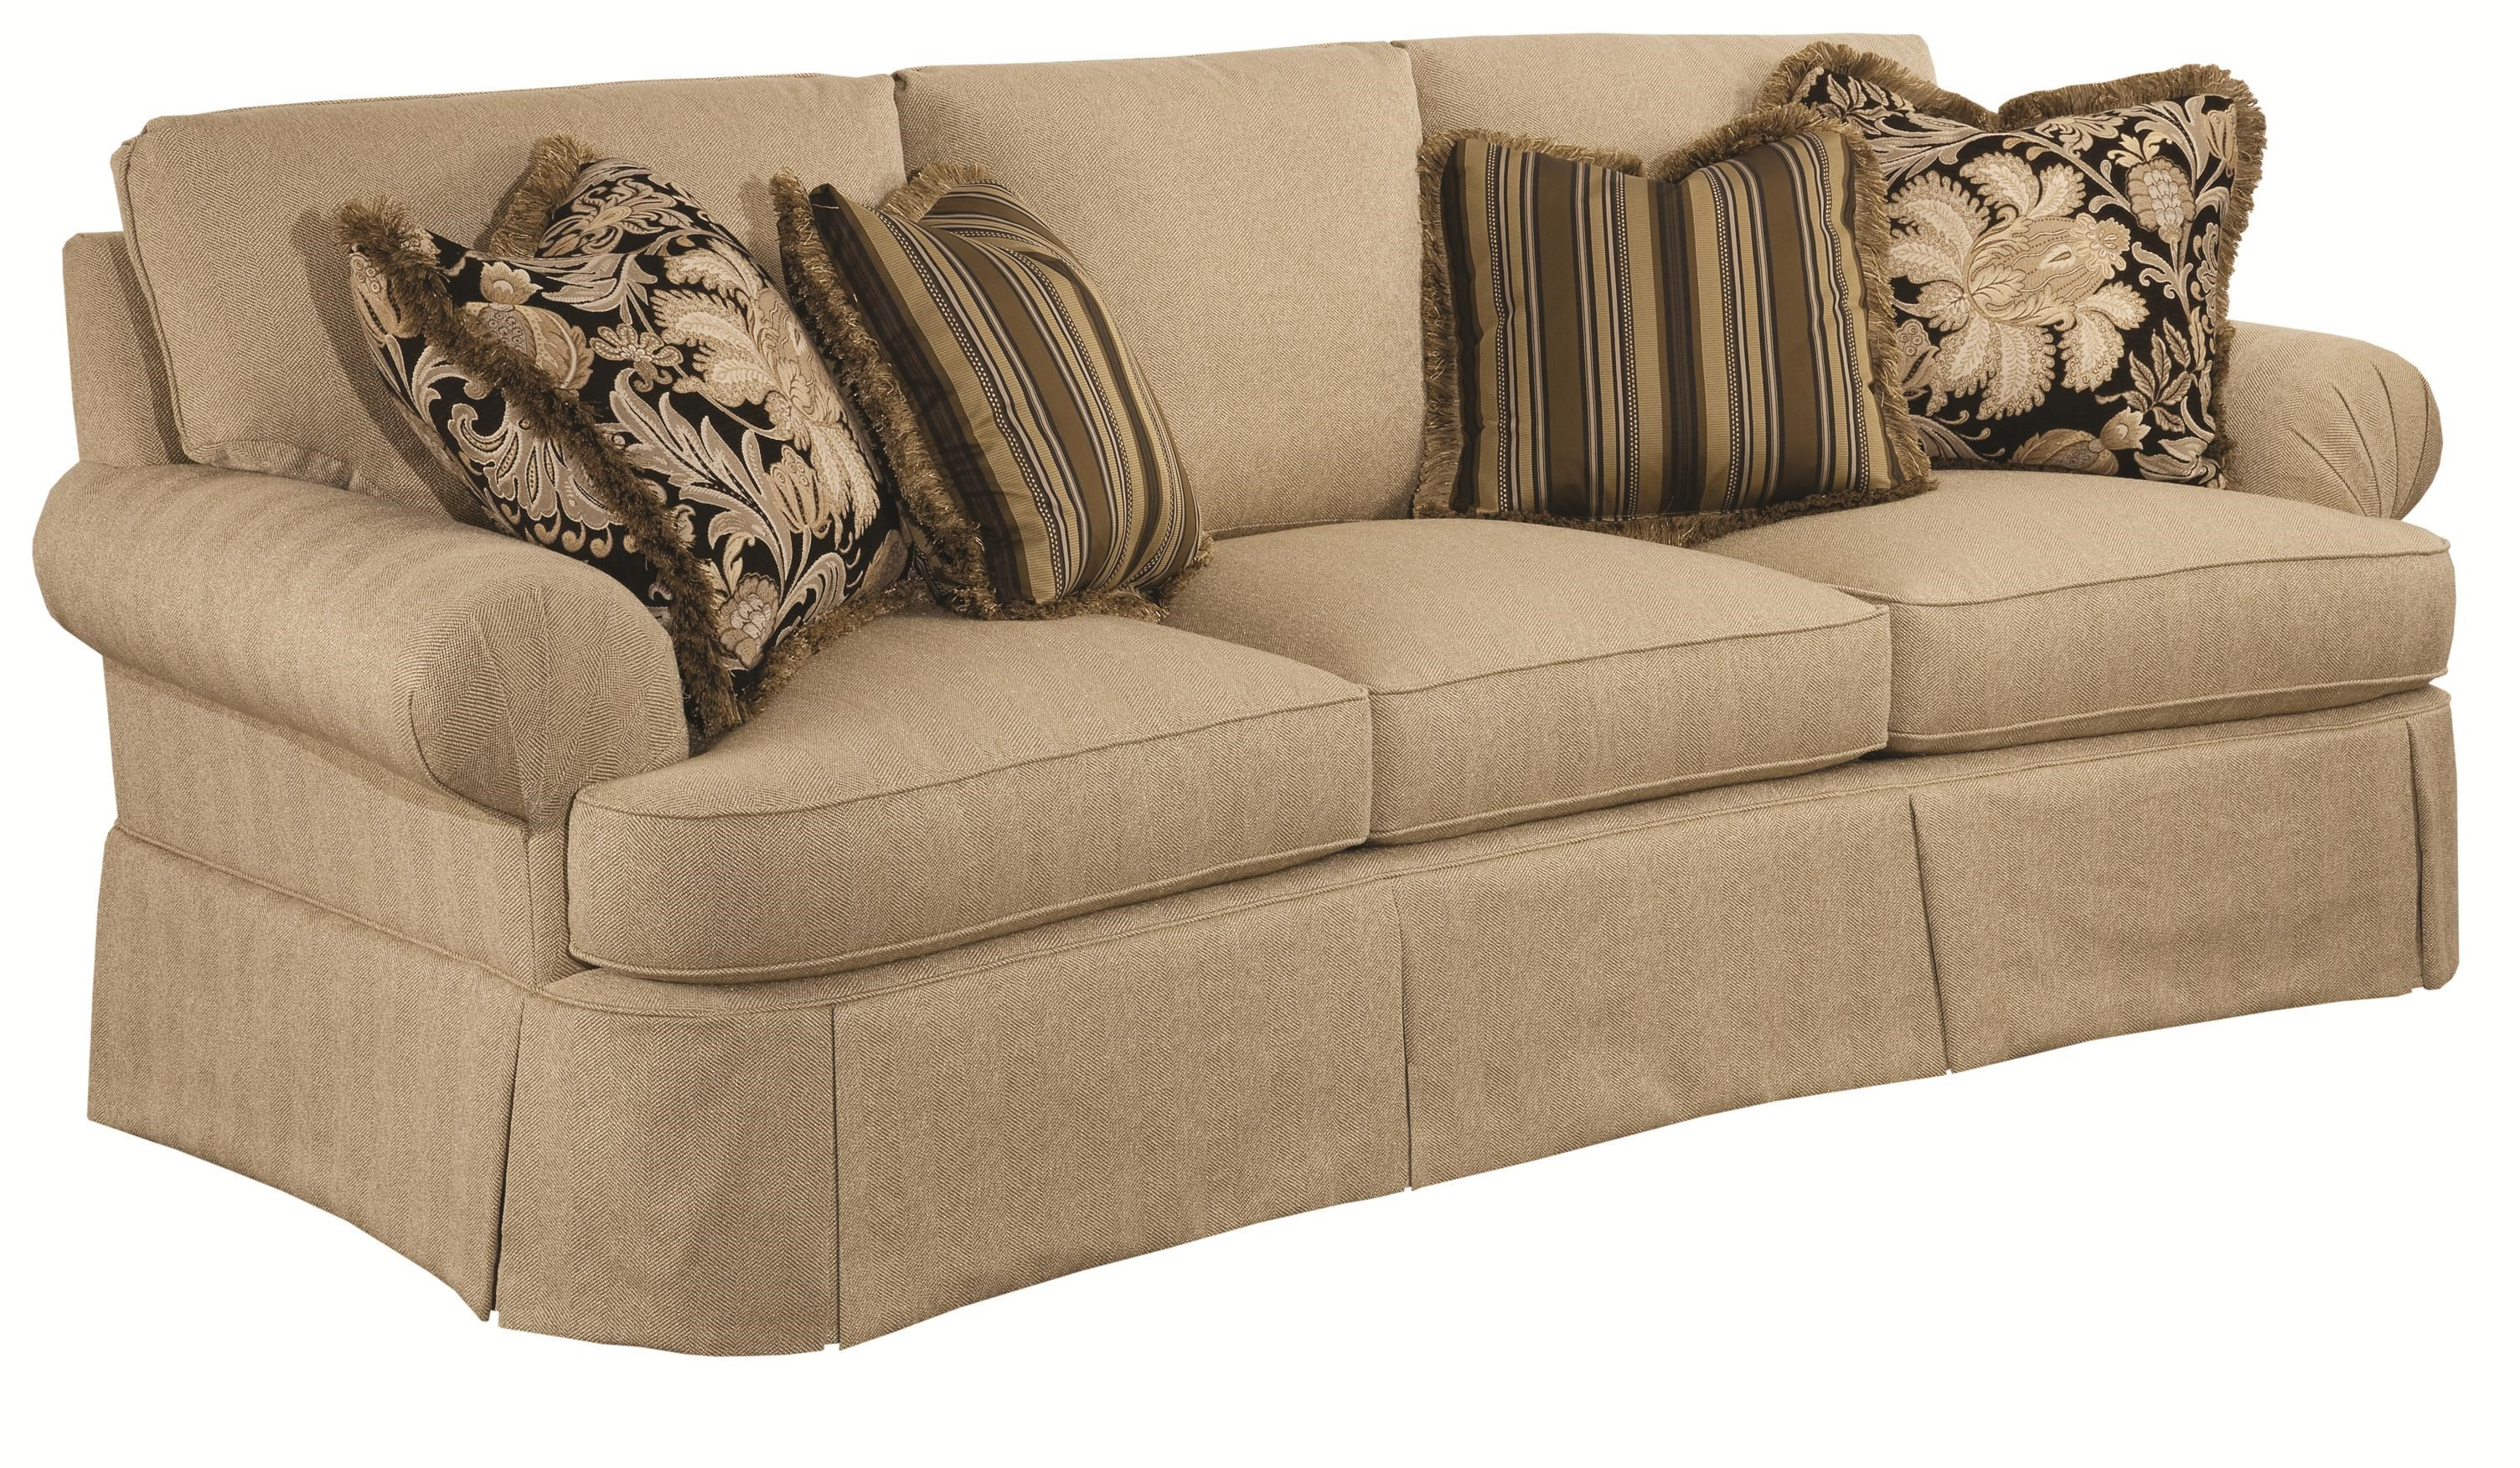 Danbury Traditional Conversation Sofa With Waterfall Skirts And Fan Pleated  Arms By Kincaid Furniture